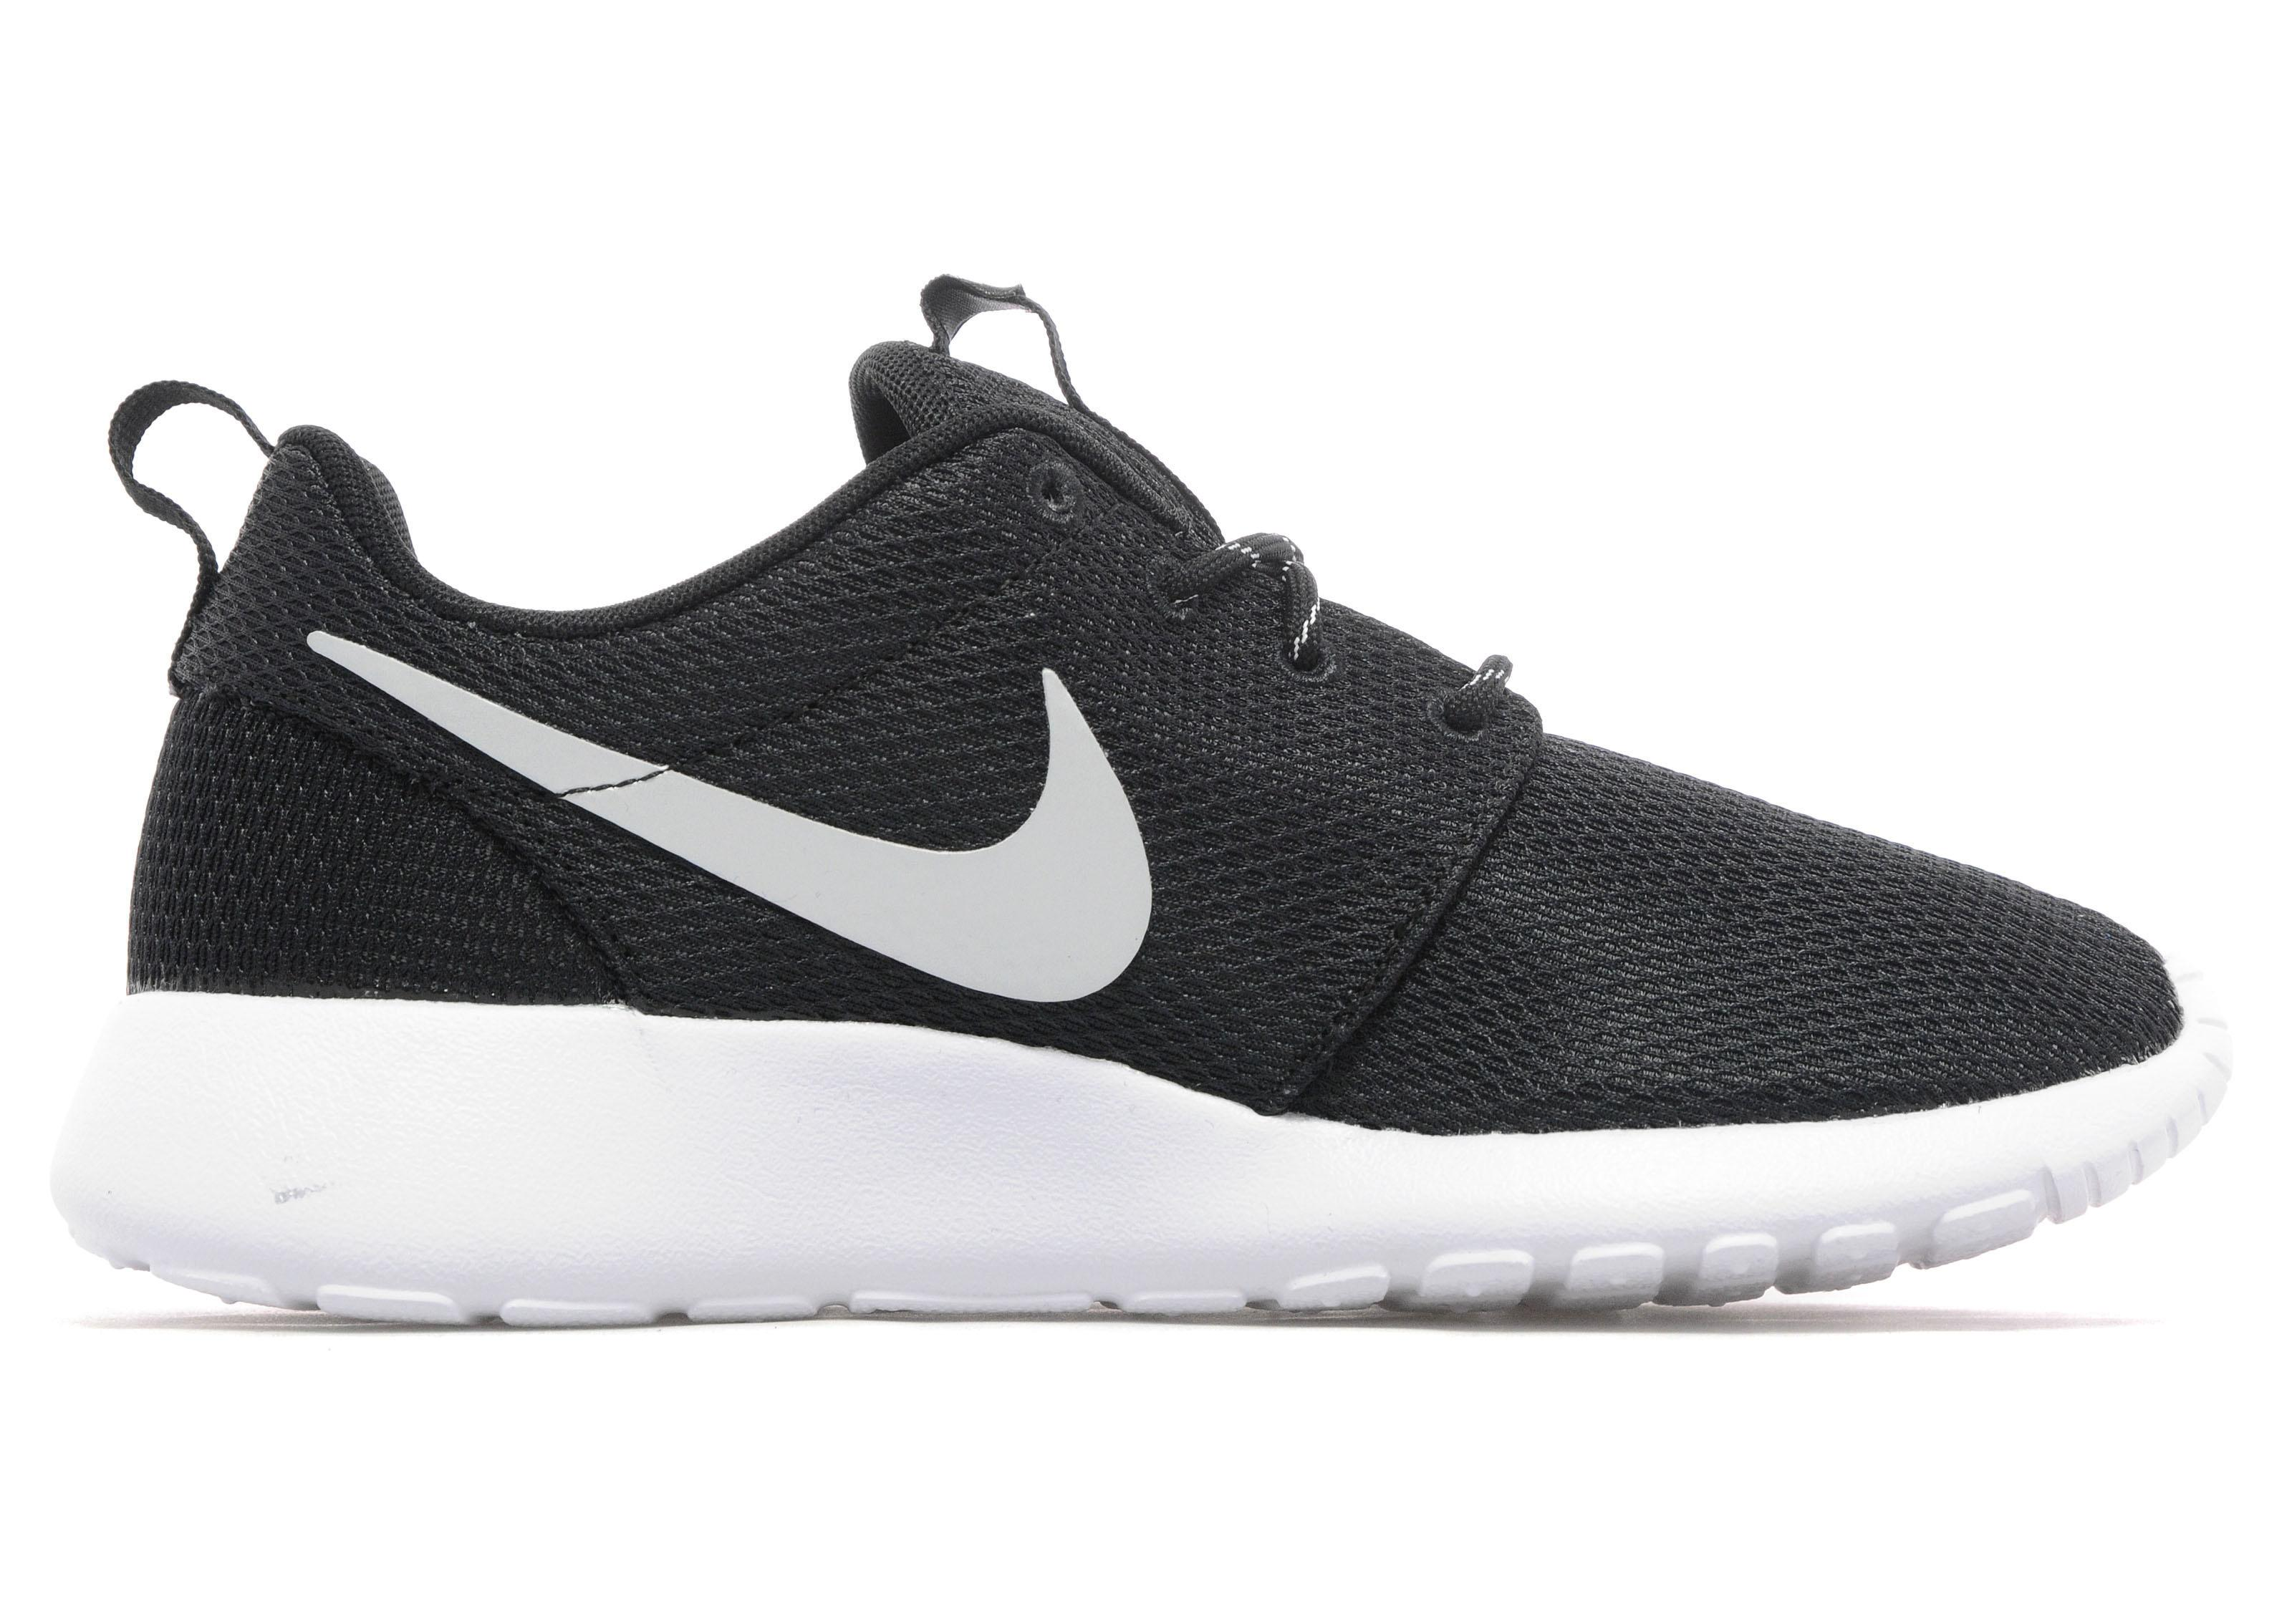 on sale 466a7 6efb8 ... zapatos abre nike roshe run negro jd . ...